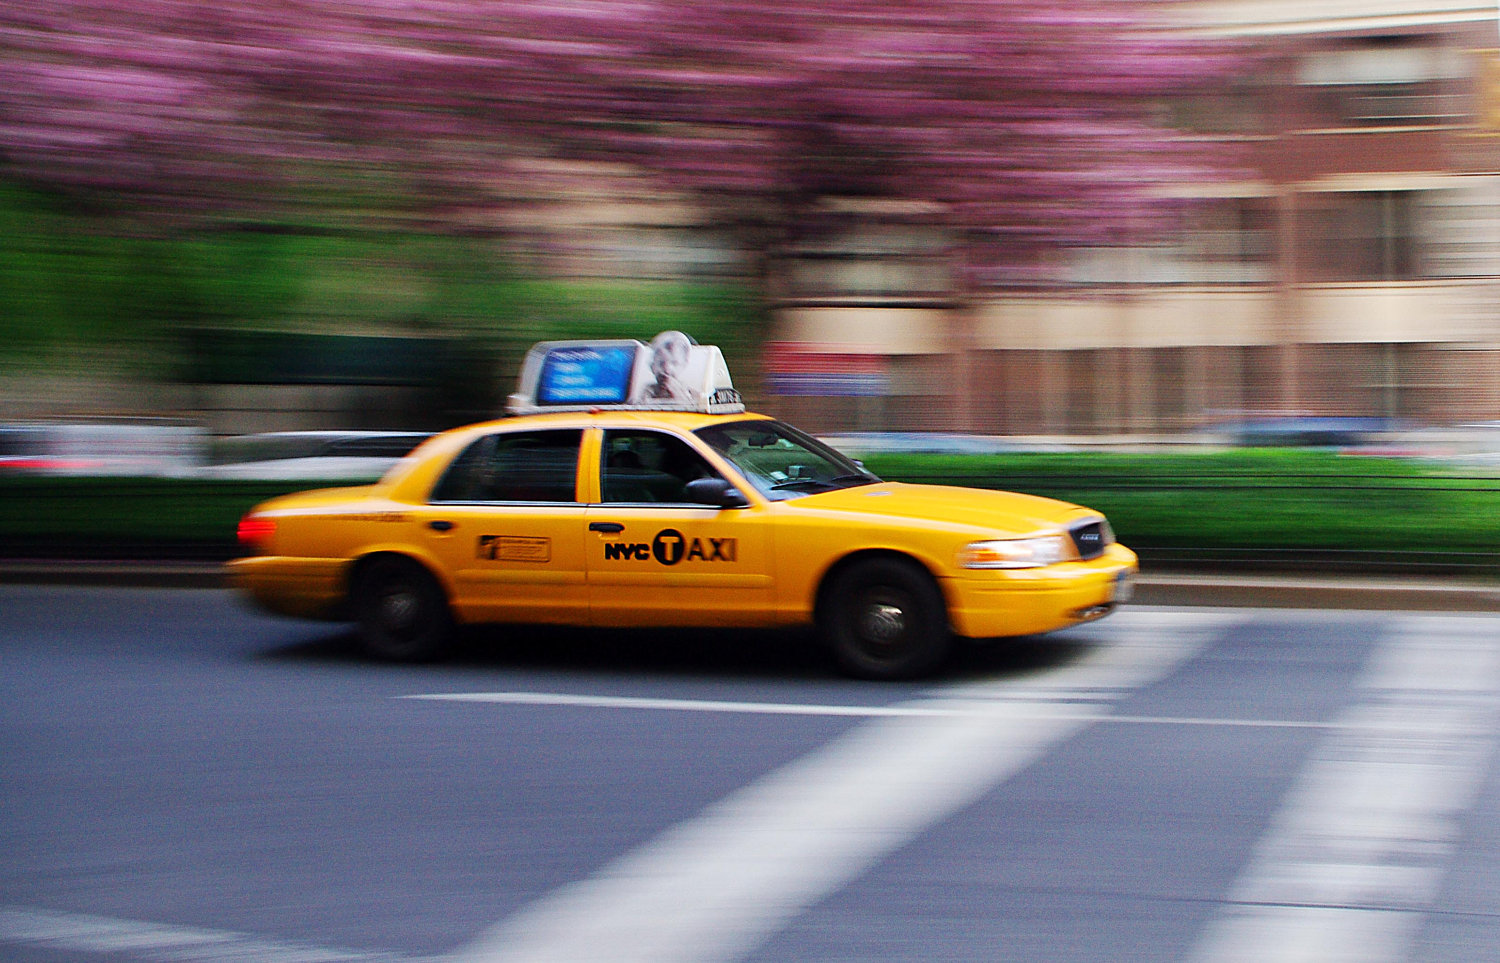 Tff news the history of the taxi industry - Order a cab ...